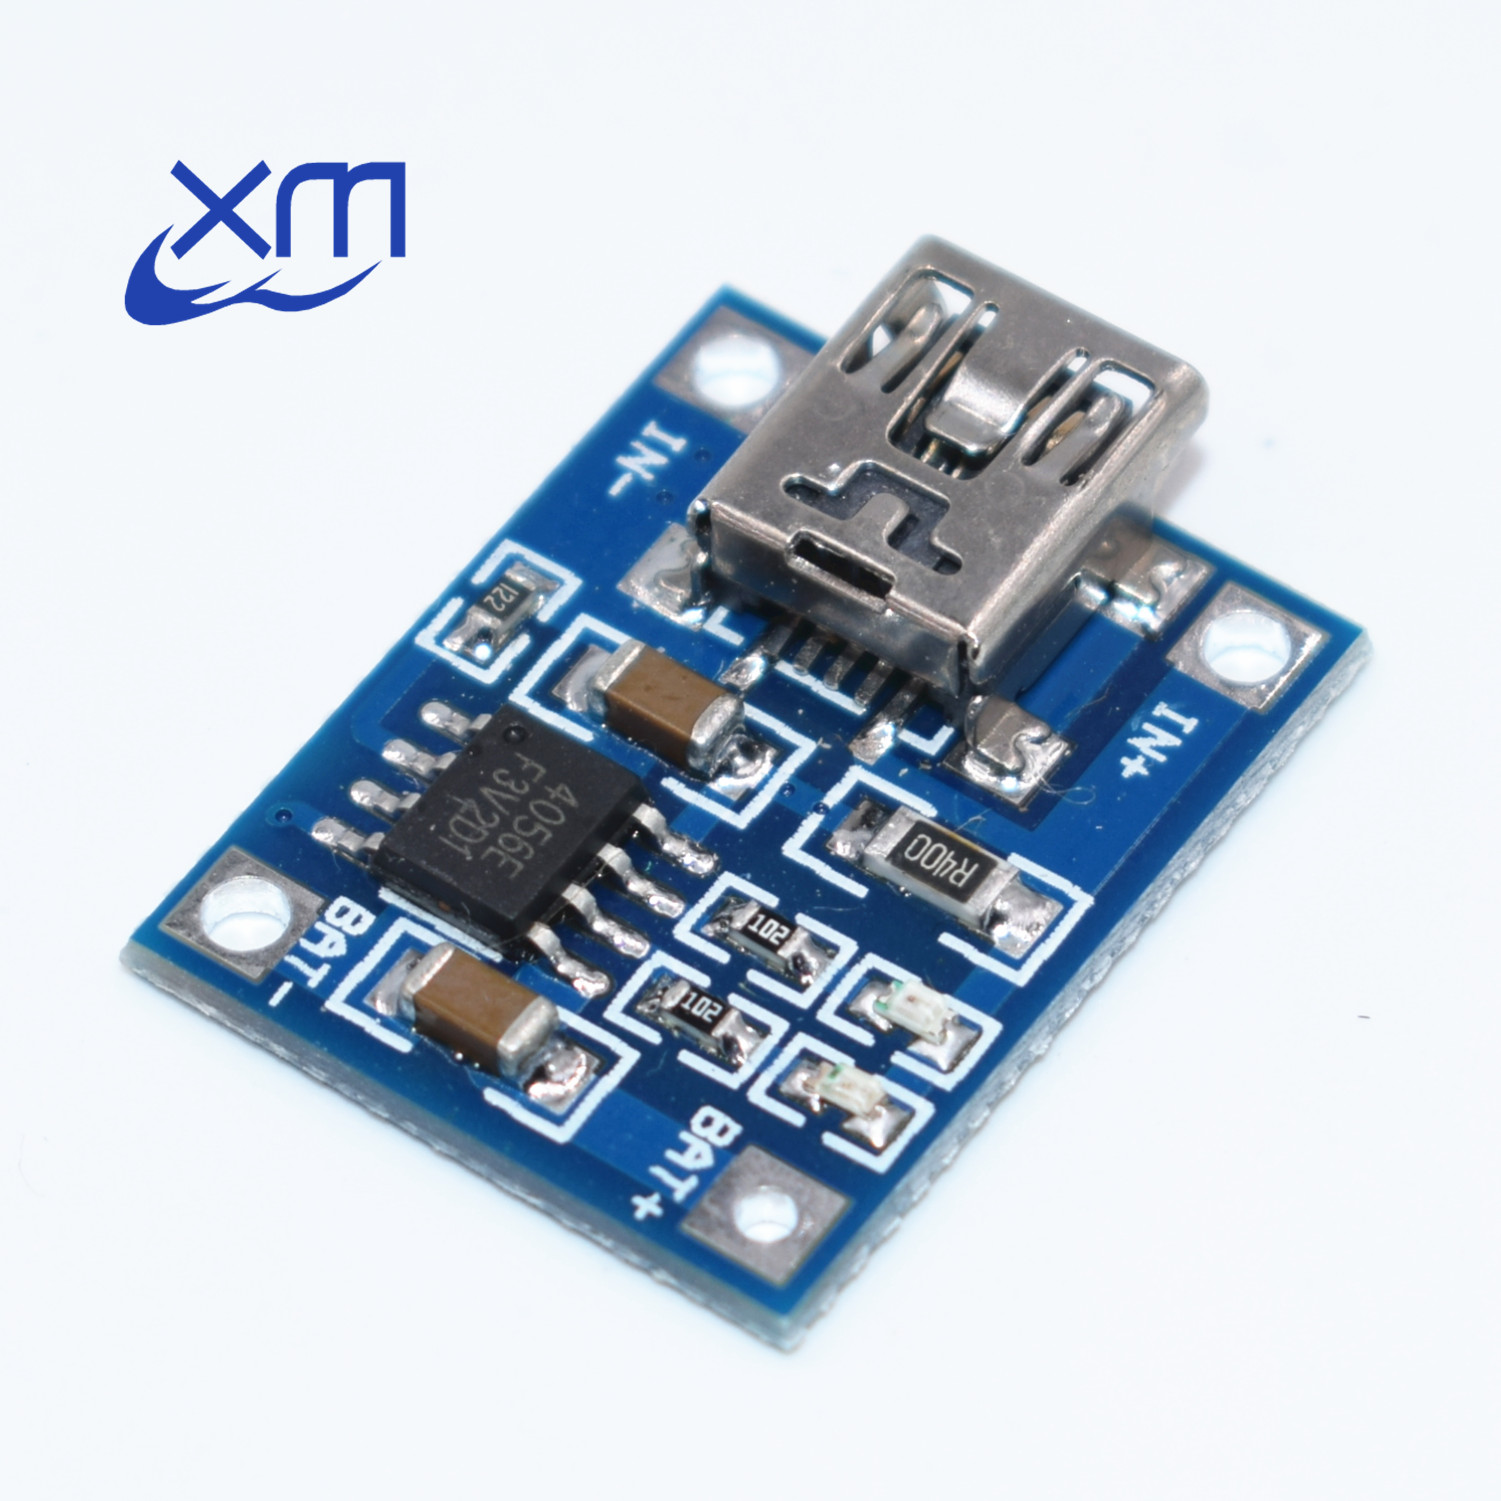 Mini USB Port 5V 1A Lithium Battery TP4056 Charging Module Charger Board Arduino